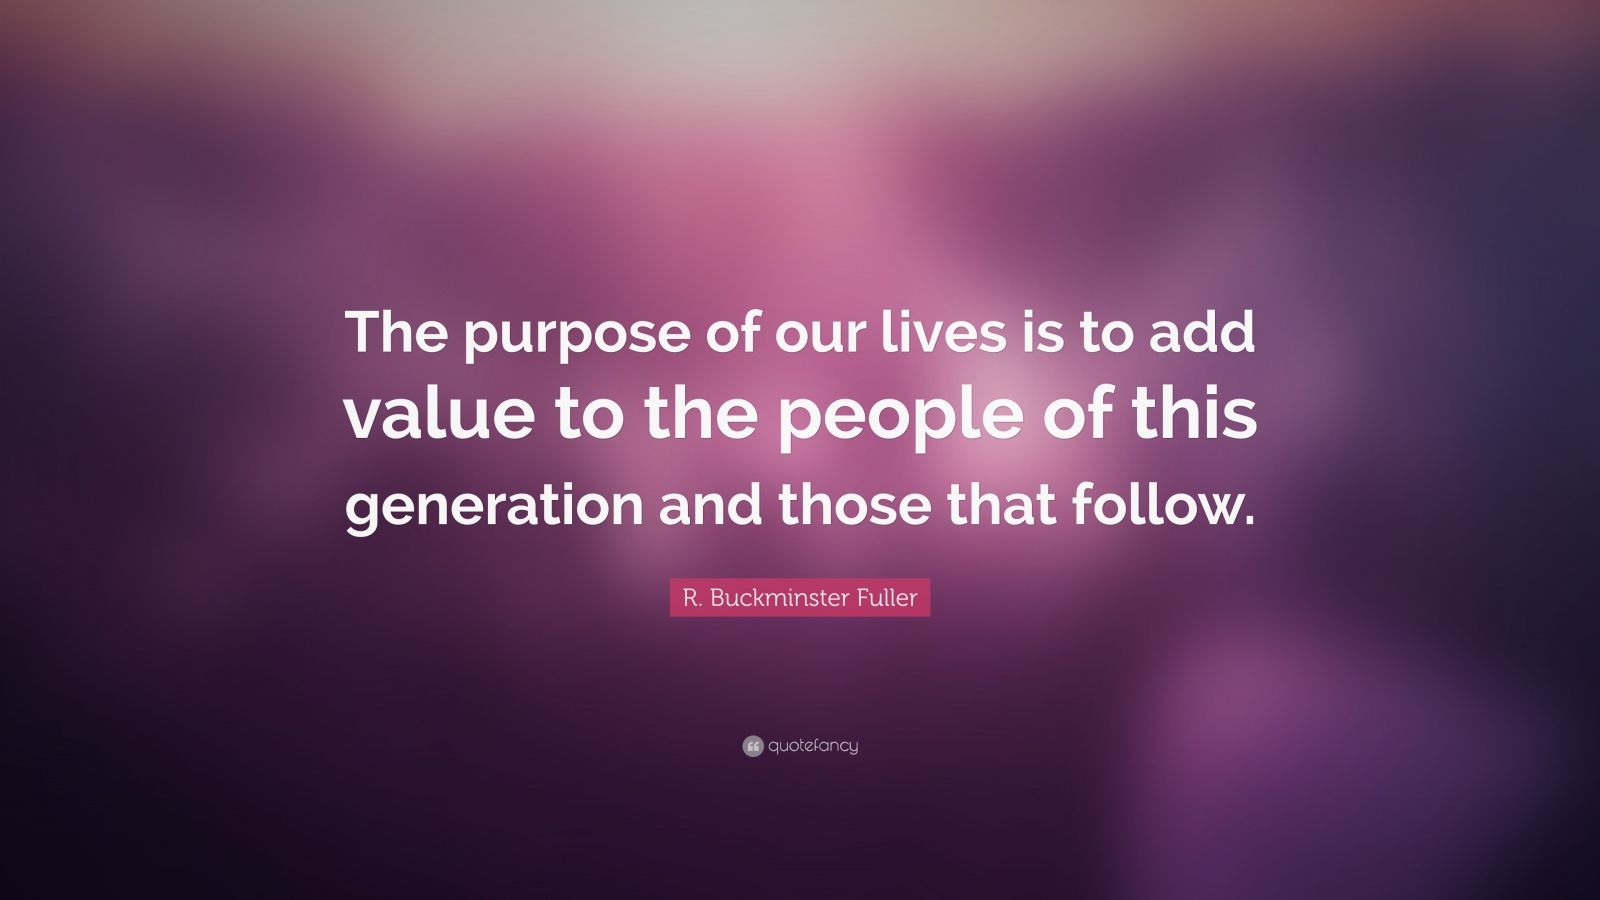 """R. Buckminster Fuller Quote: """"The purpose of our lives is to add value to the people of this generation and those that follow."""""""